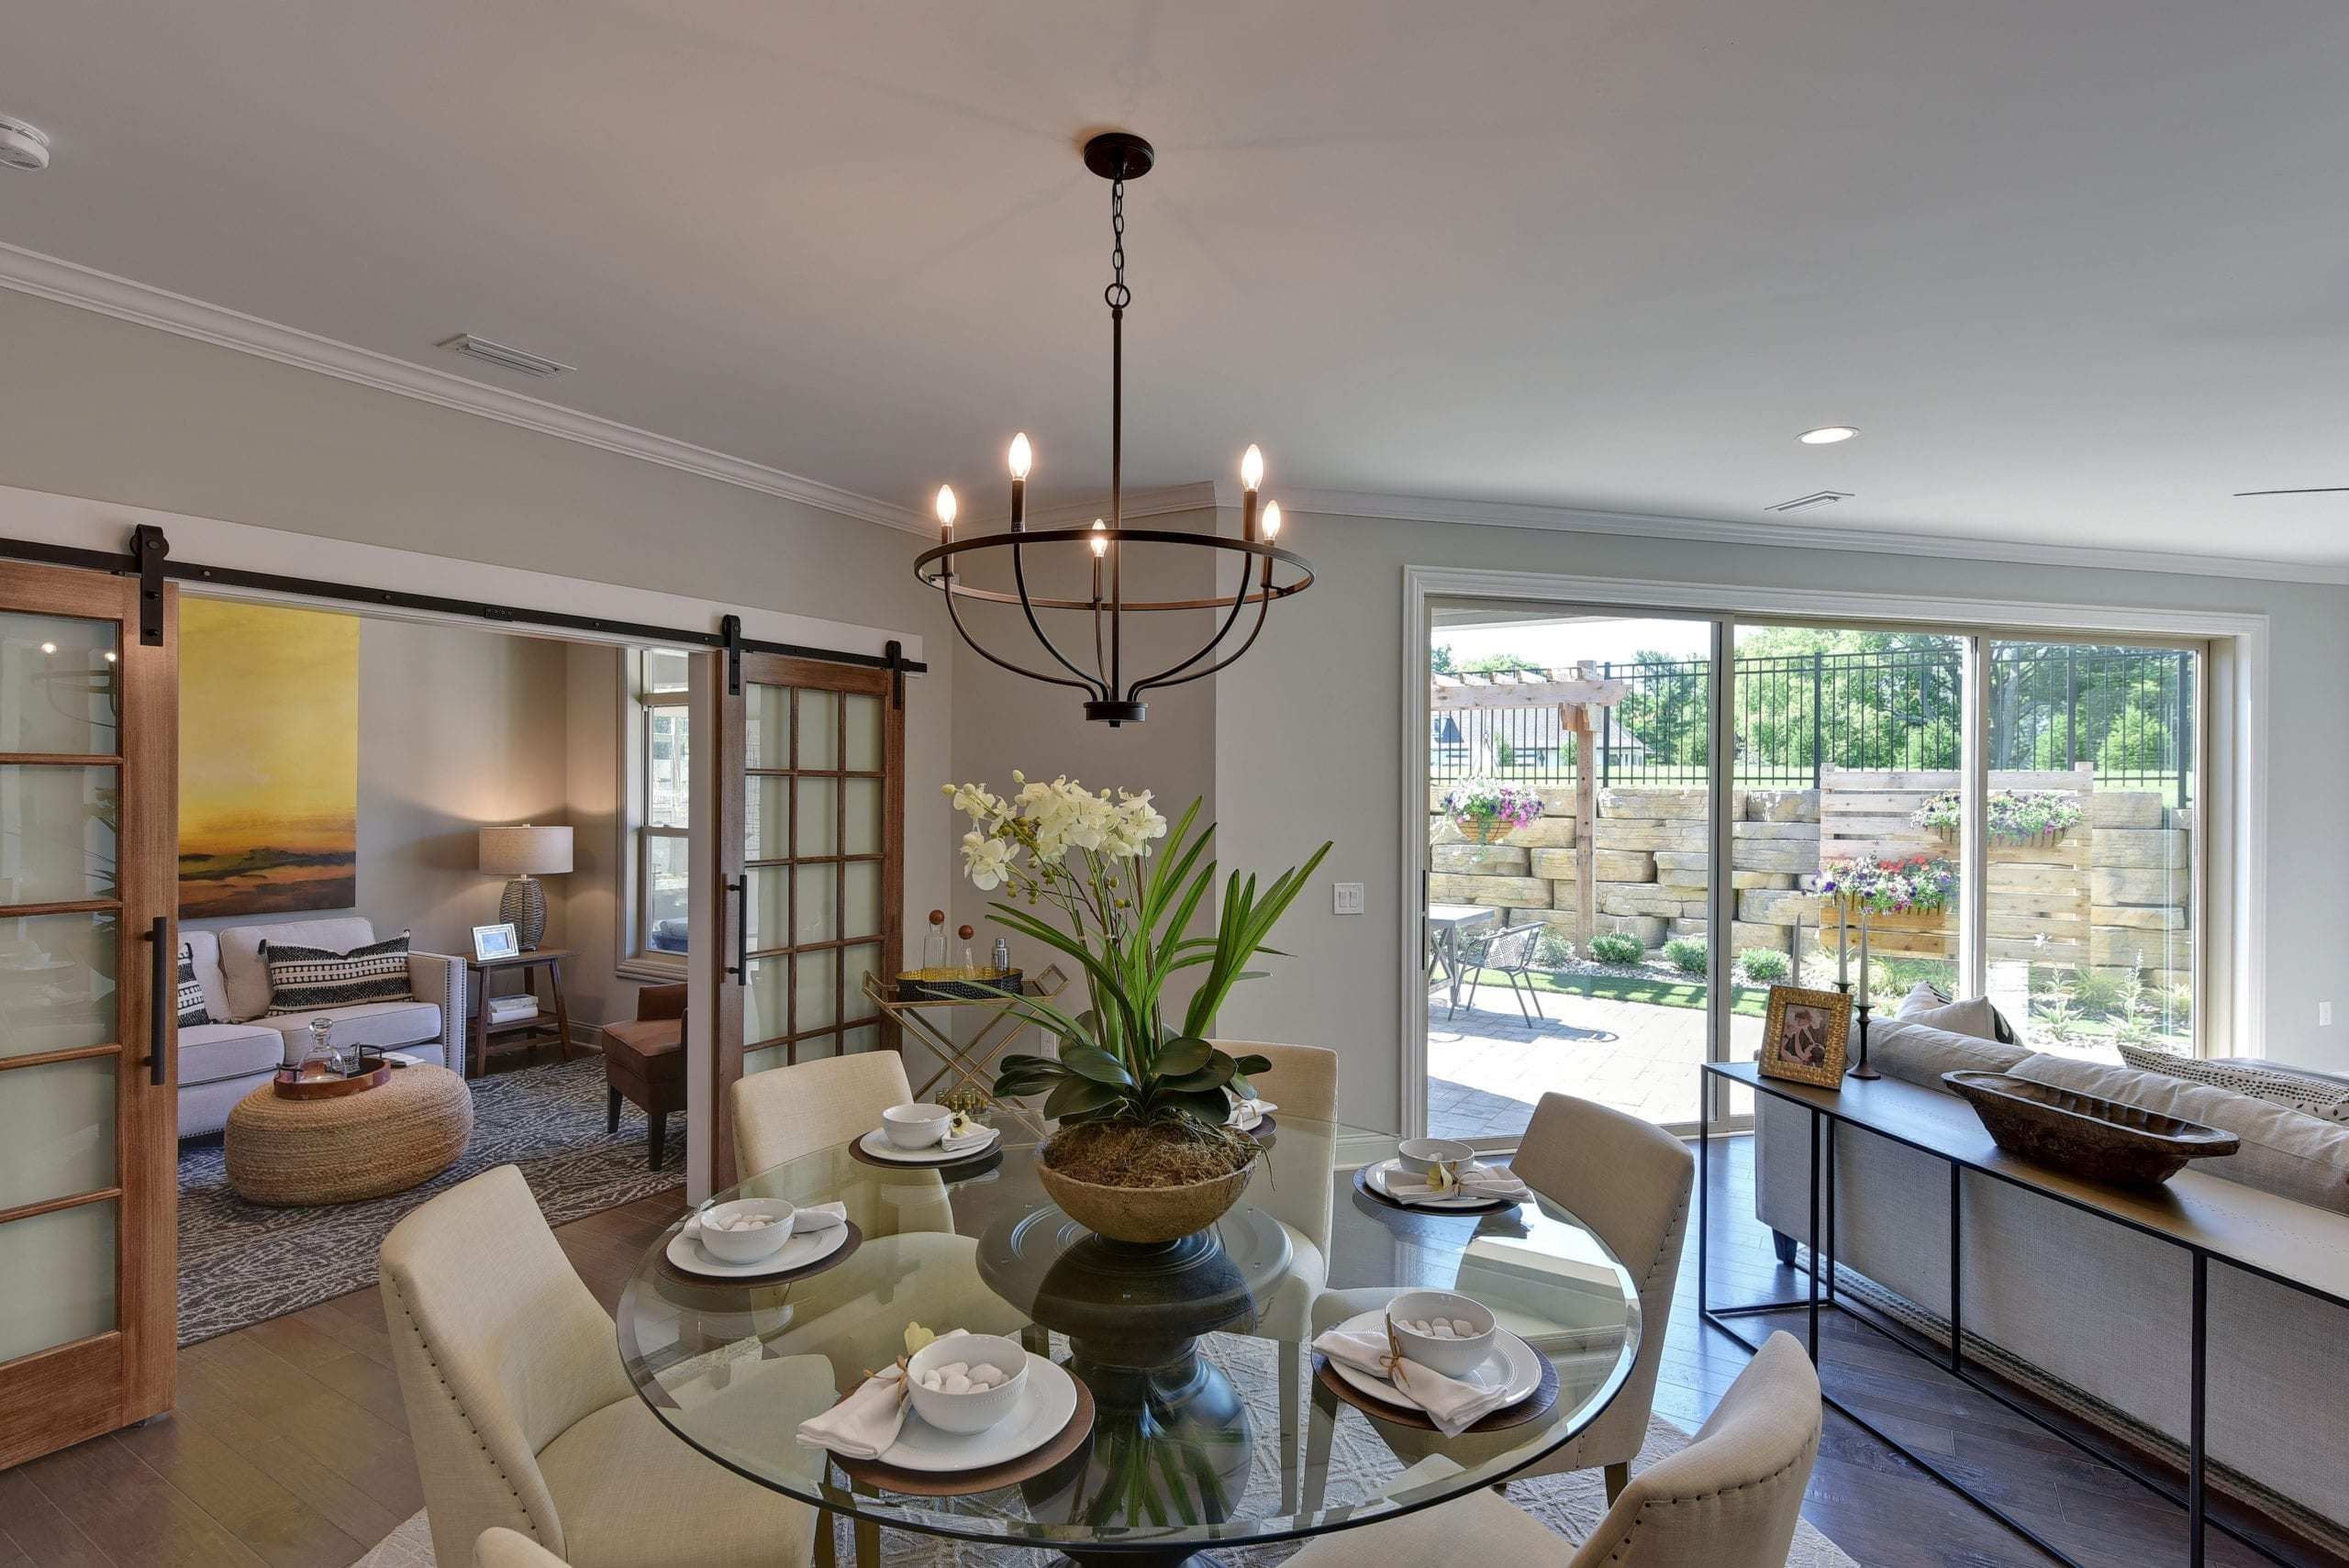 Kitchen featured in the Promenade III - Charlotte** By Epcon Communities in Charlotte, NC